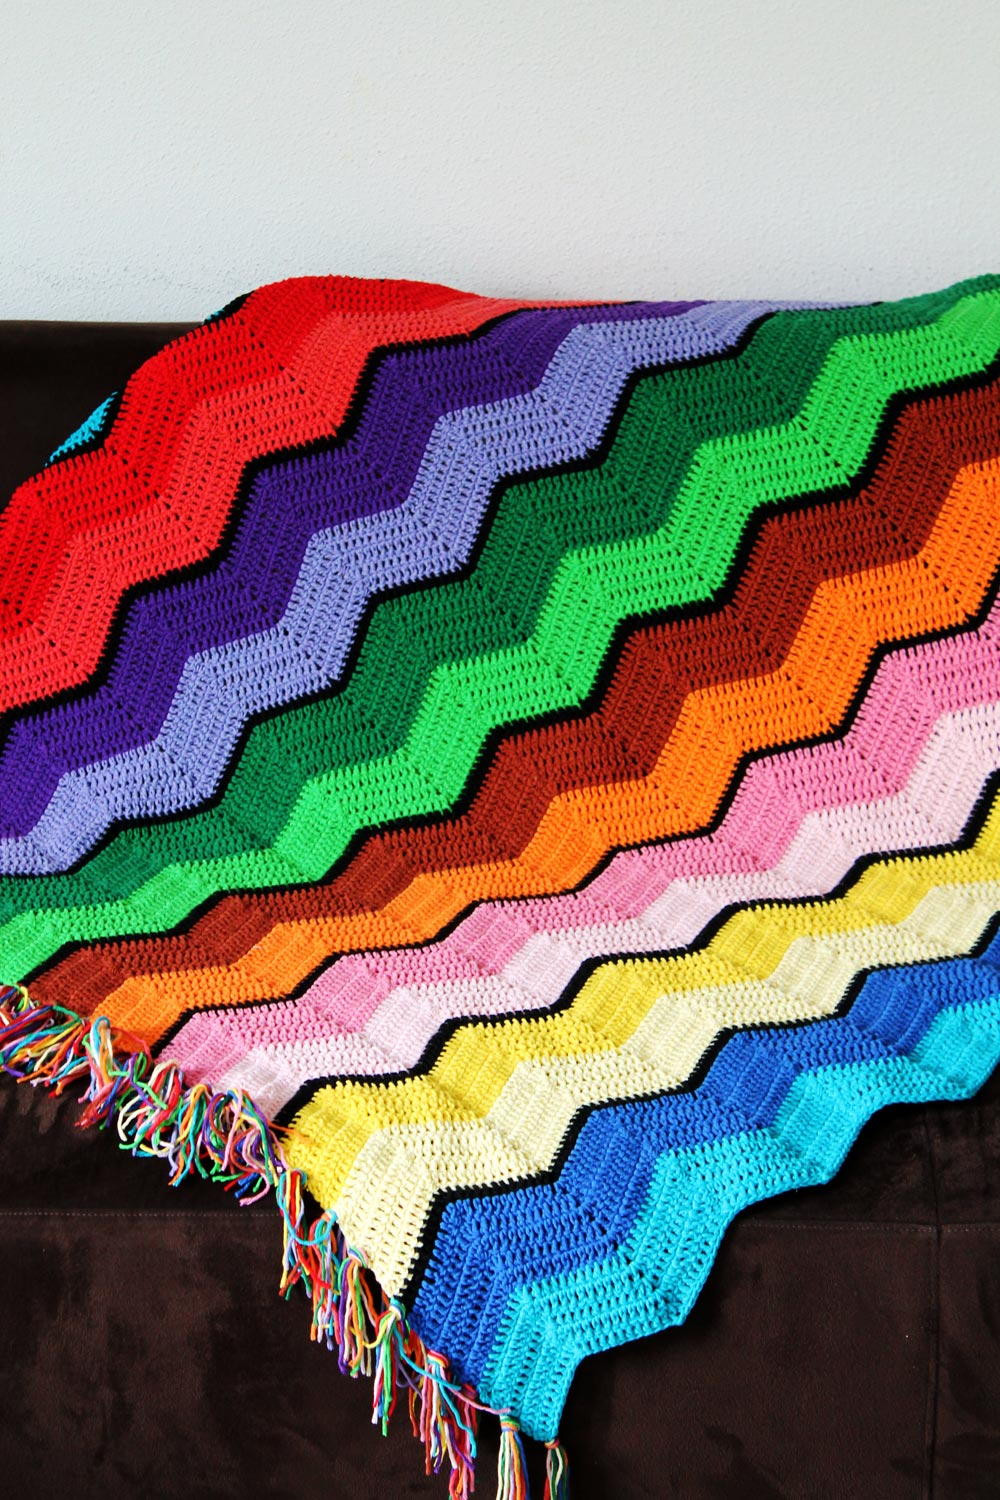 Croshay Blankets Unique 51 Free Crochet Blanket Patterns for Beginners Of Perfect 46 Pics Croshay Blankets